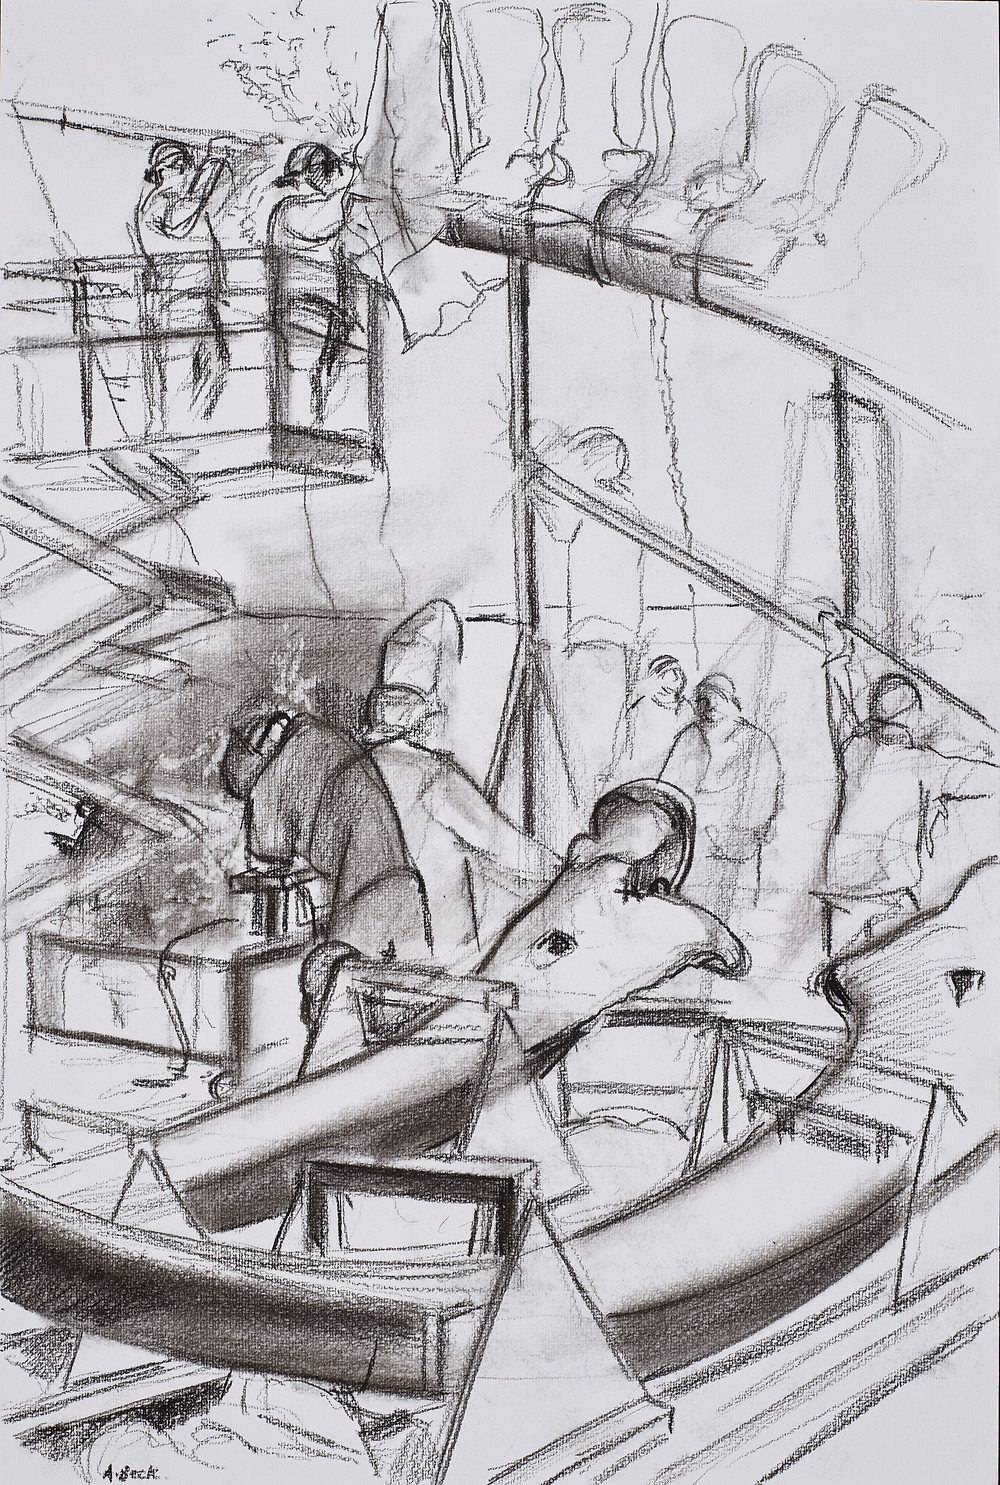 Charcoal sketch of the Skeleton Crew from RCI